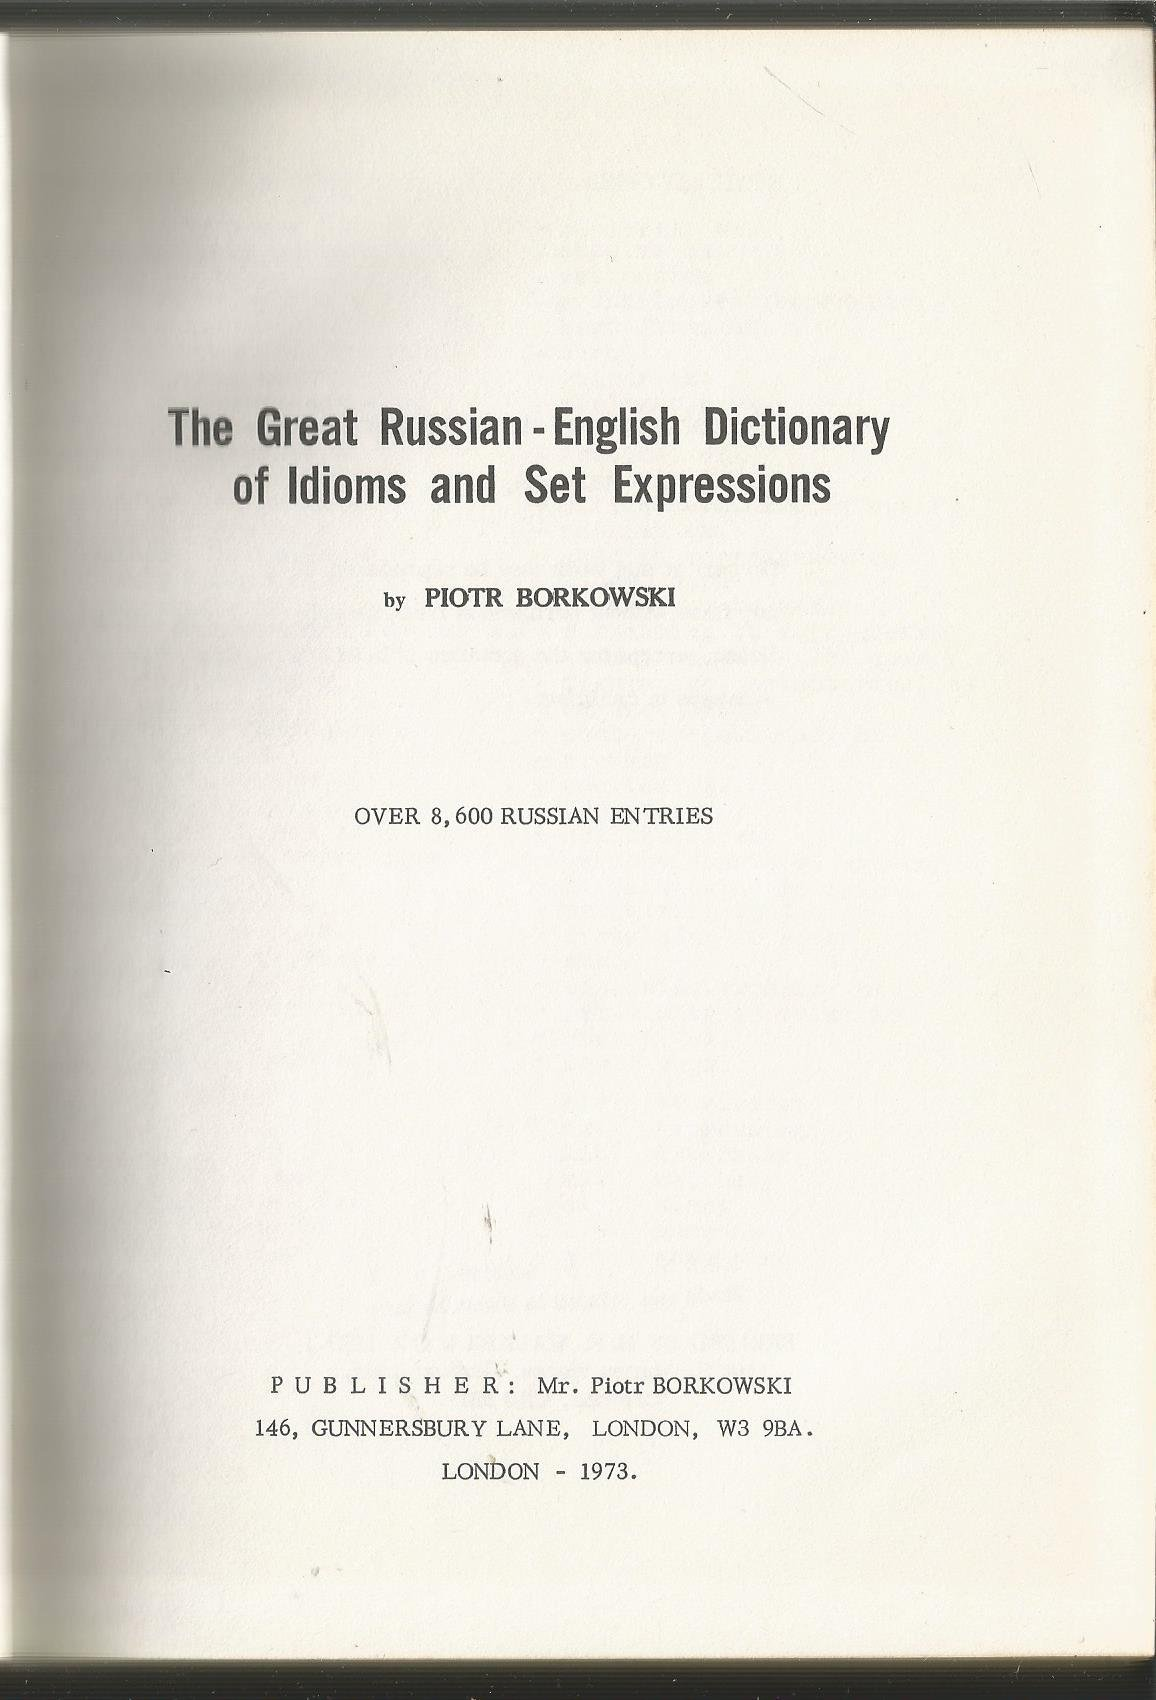 Set expressions in Russian 70